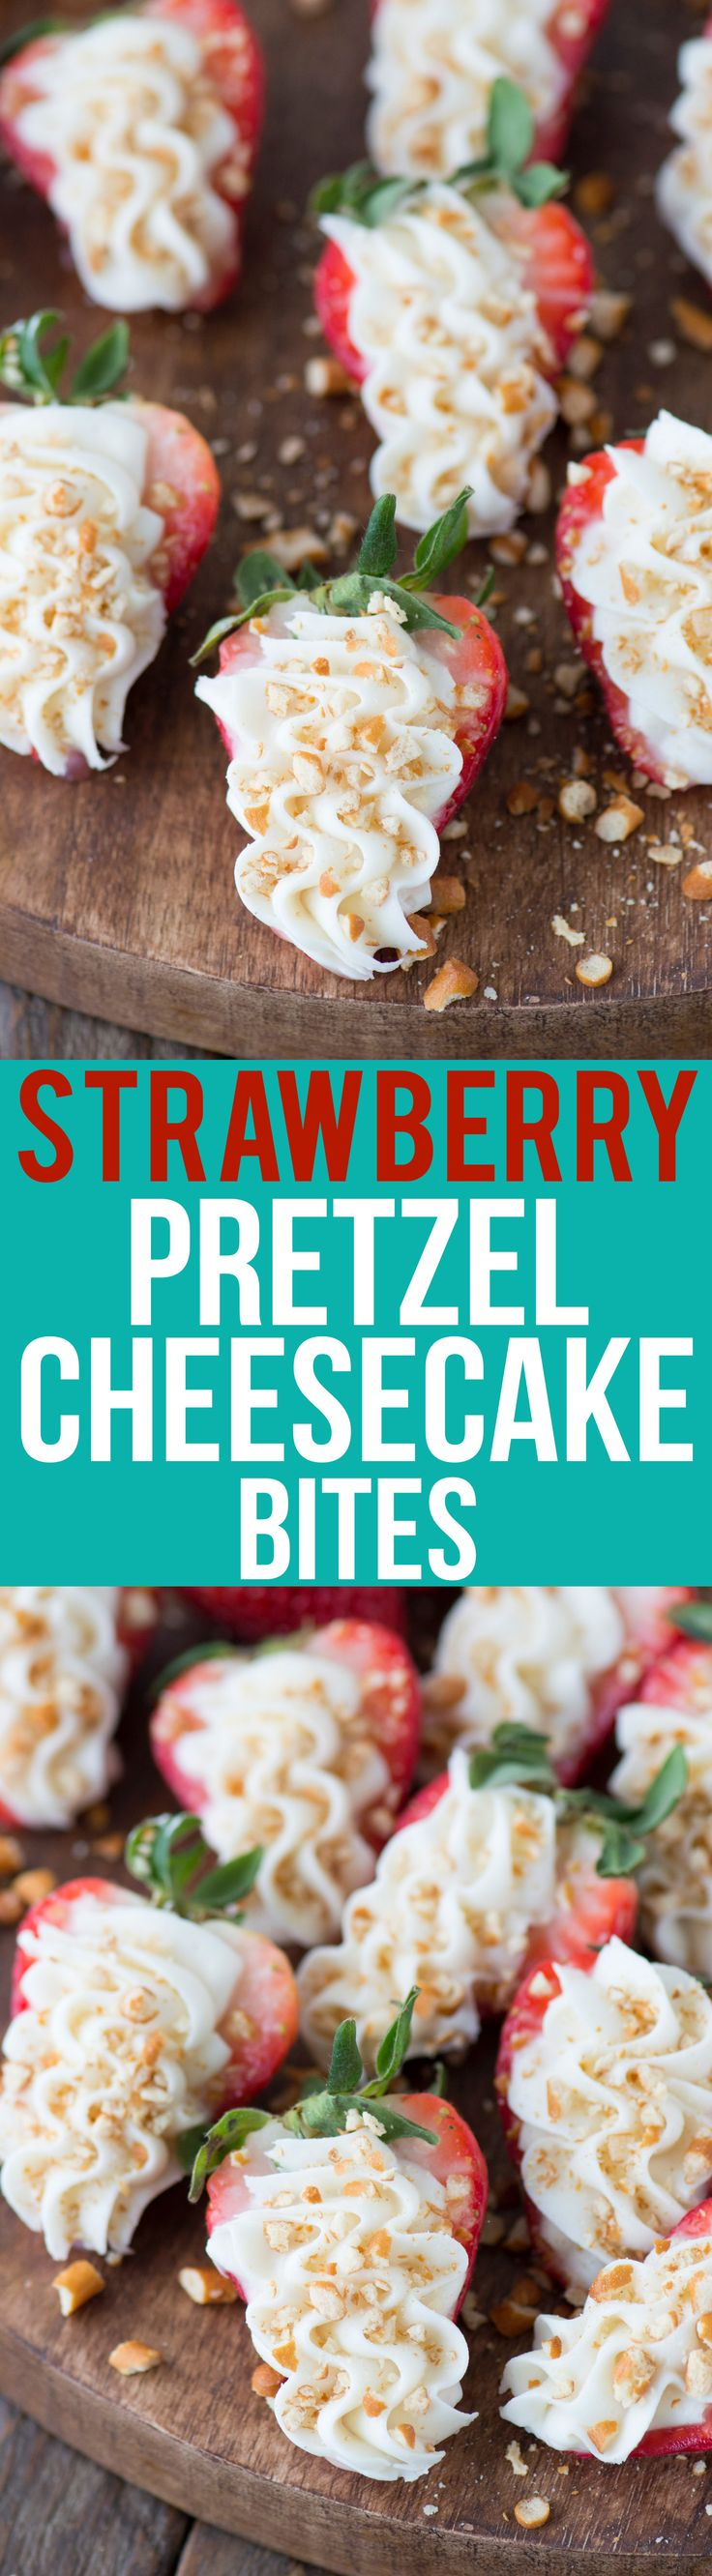 Simple, no bake summer dessert - strawberry pretzel cheesecake bites! Cheesecake stuffed strawberries topped with crushed pretzels.: